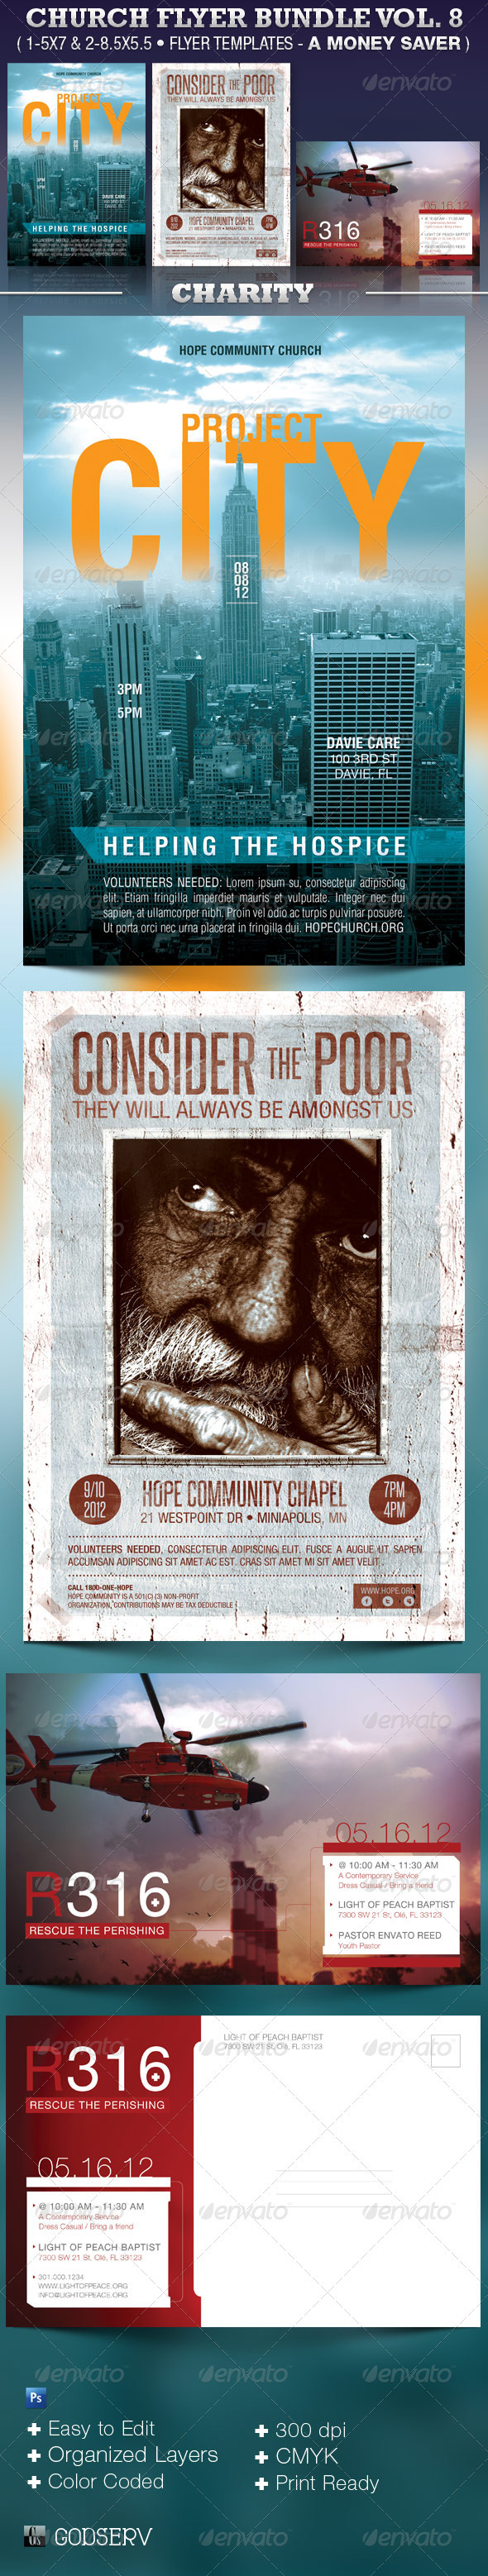 Charity Church Flyer Template Bundle - Church Flyers